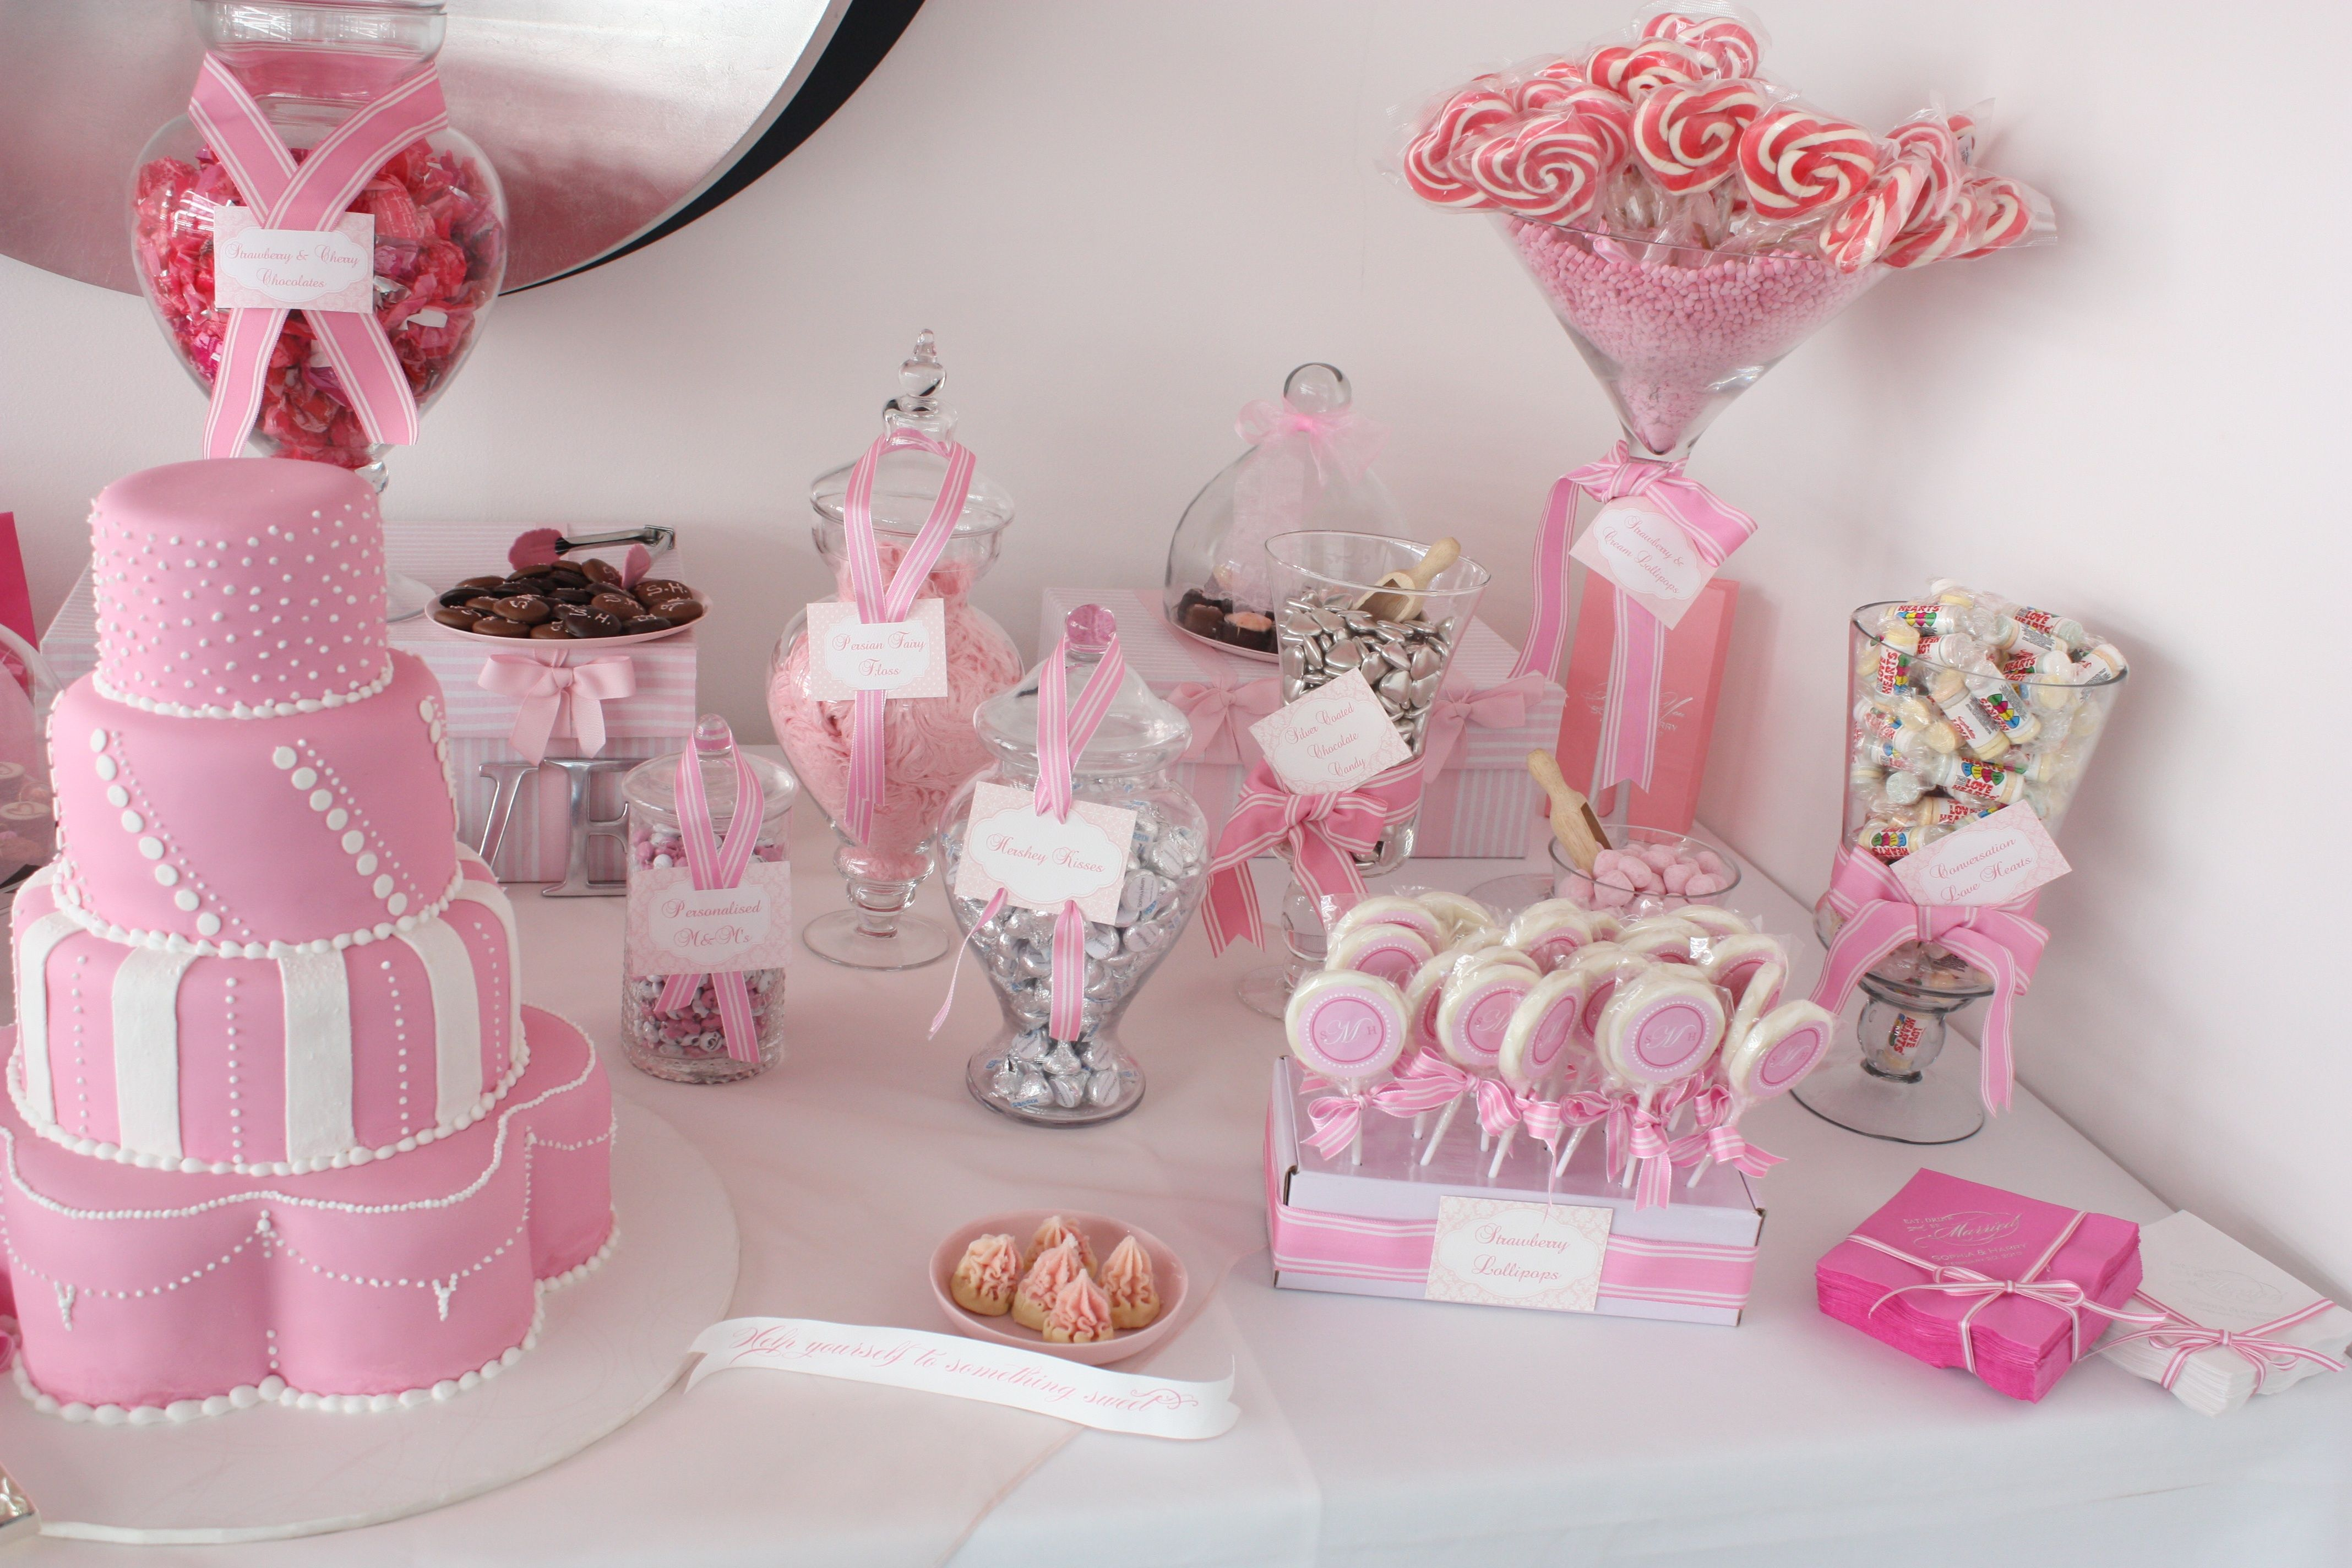 Quinceanera Ceiling Decorations Sugarcoated Pink And White Candy Buffet The Sweetest Occasion